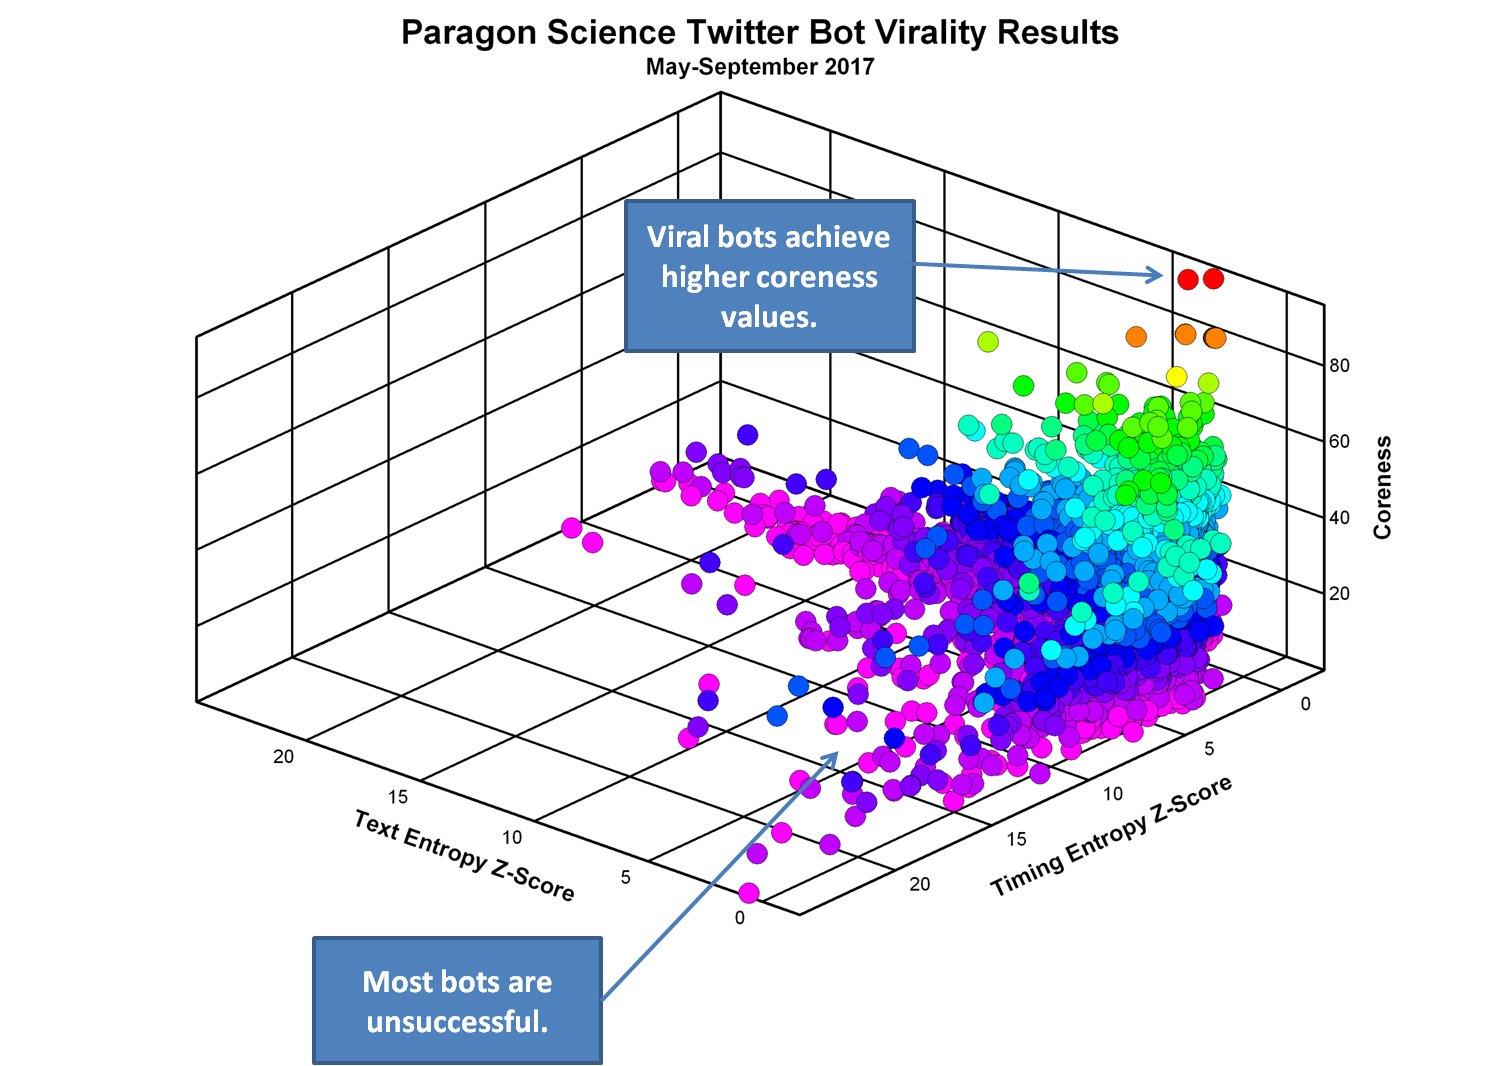 /how-bots-and-cyborgs-spread-misinformation-a-data-scientist-finds-72-000-000-tweets-by-5-000-fa6f28ba0649 feature image